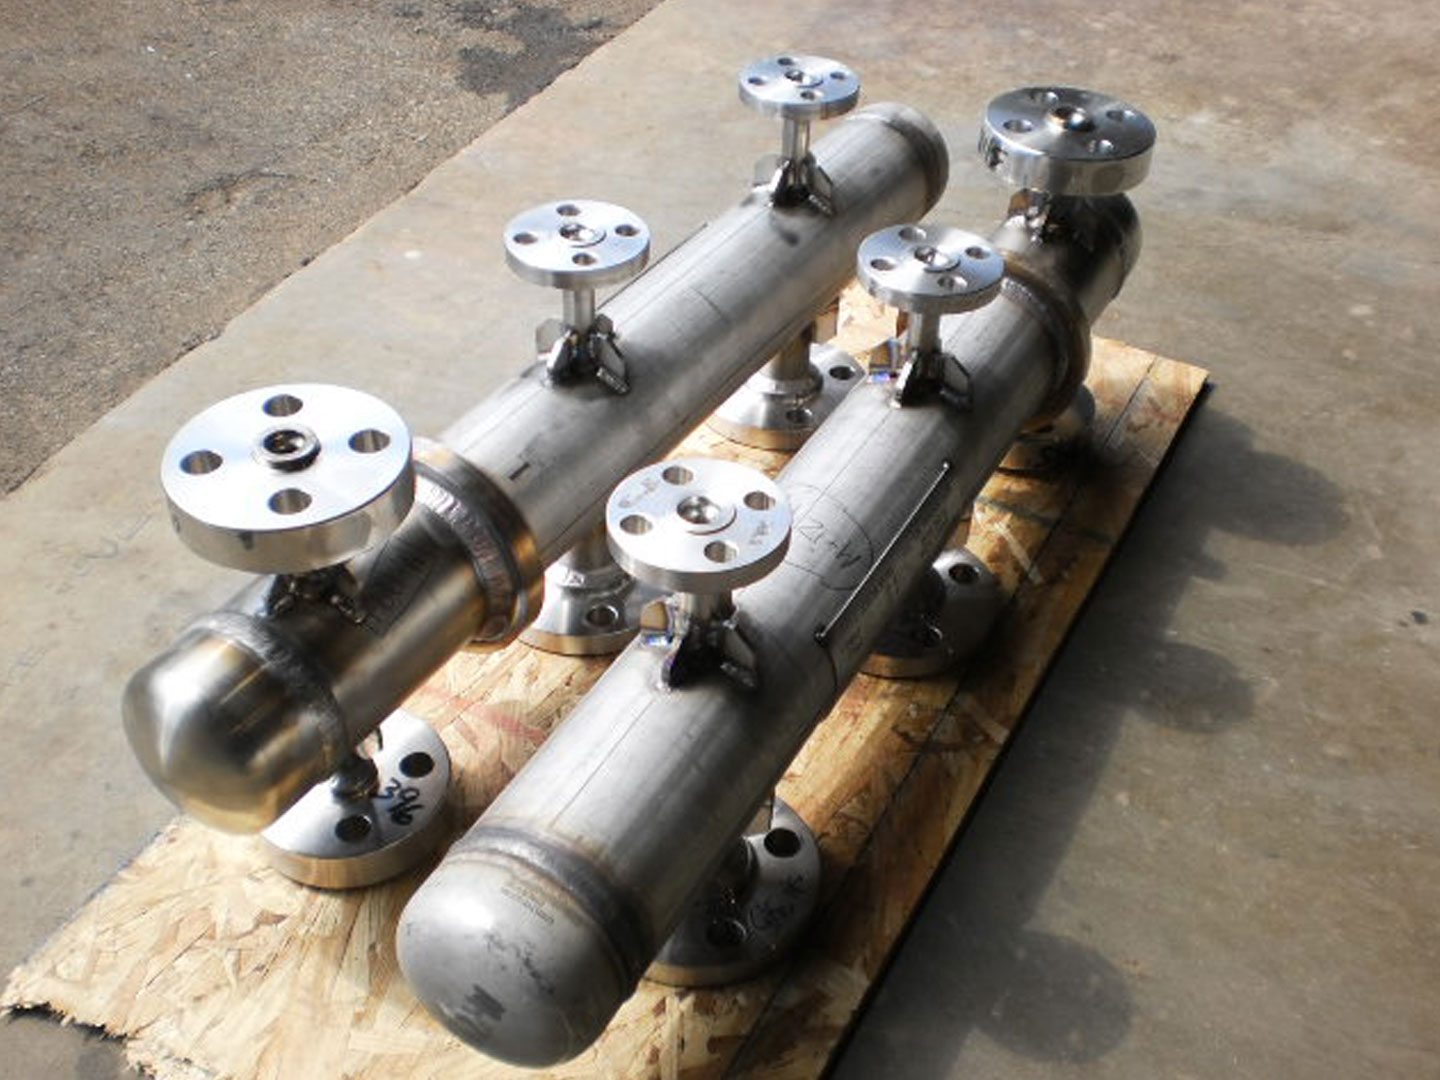 Specialized Shell and Tube Heat Exchangers